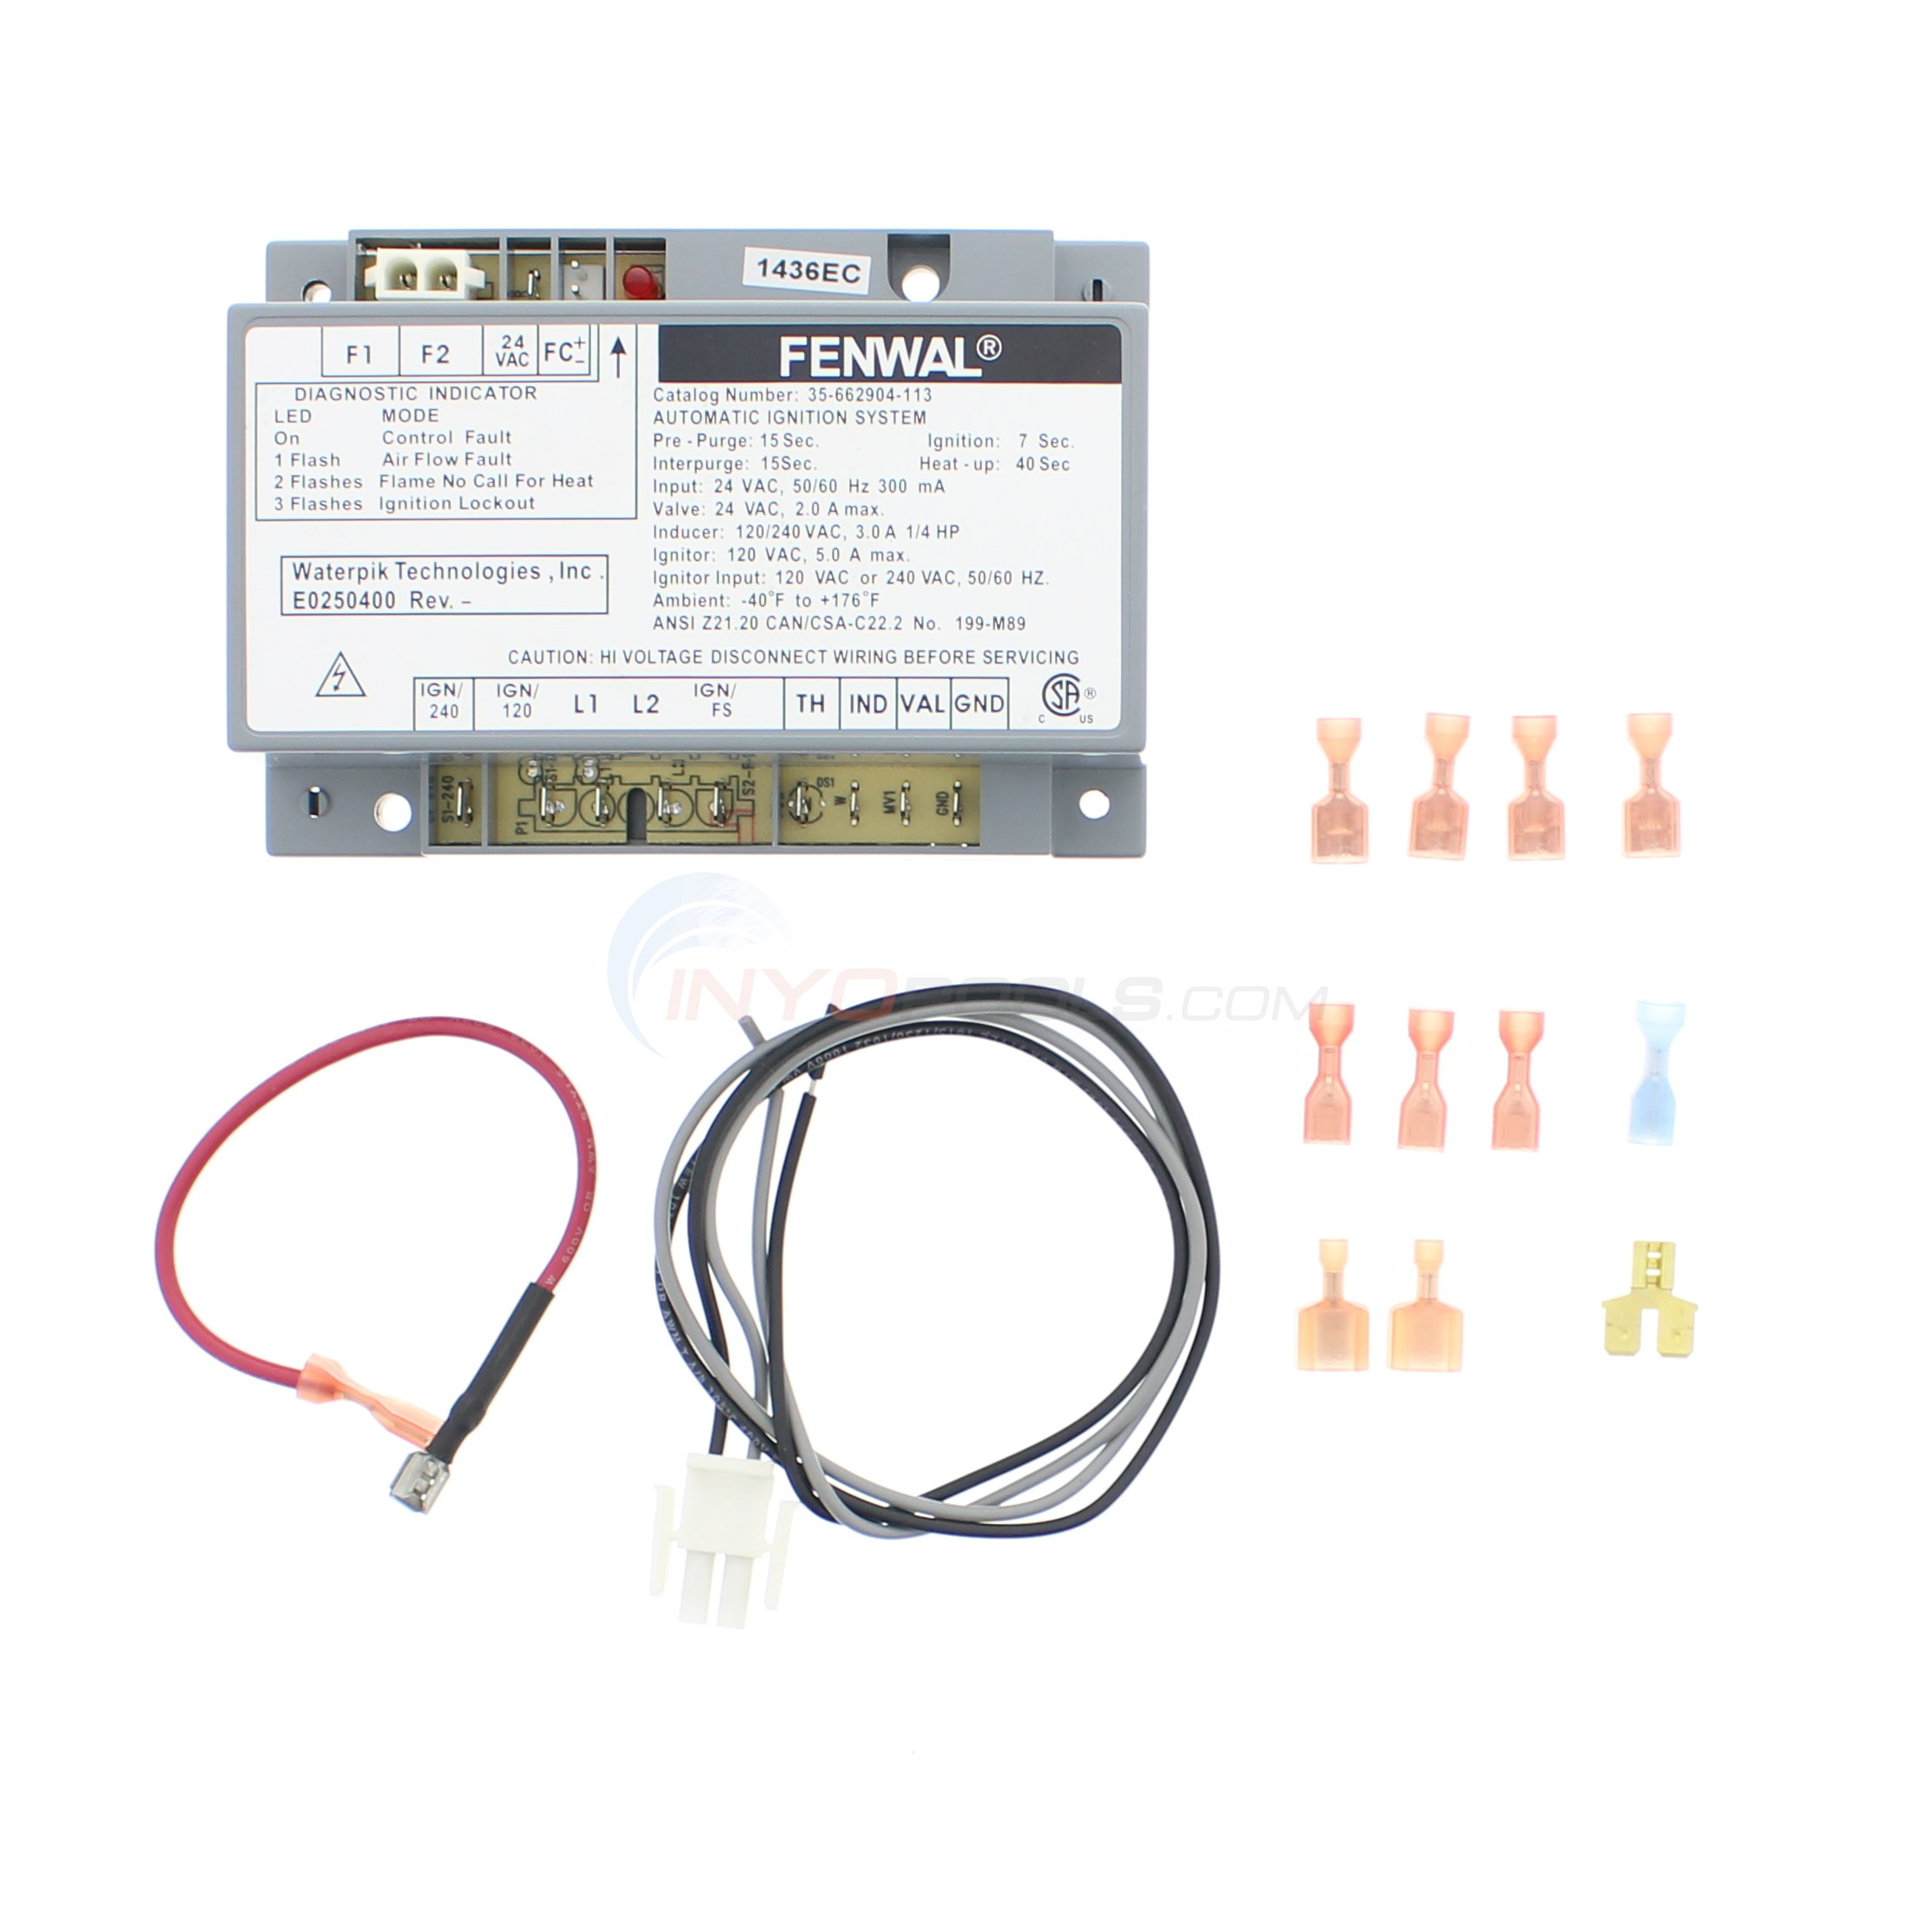 zodiac 6200 0304?format=jpg&scale=both&anchor=middlecenter&autorotate=true&mode=pad&width=650&height=650 zodiac ignition control assembly (r0408100) inyopools com fenwal ignition module wiring diagram at nearapp.co